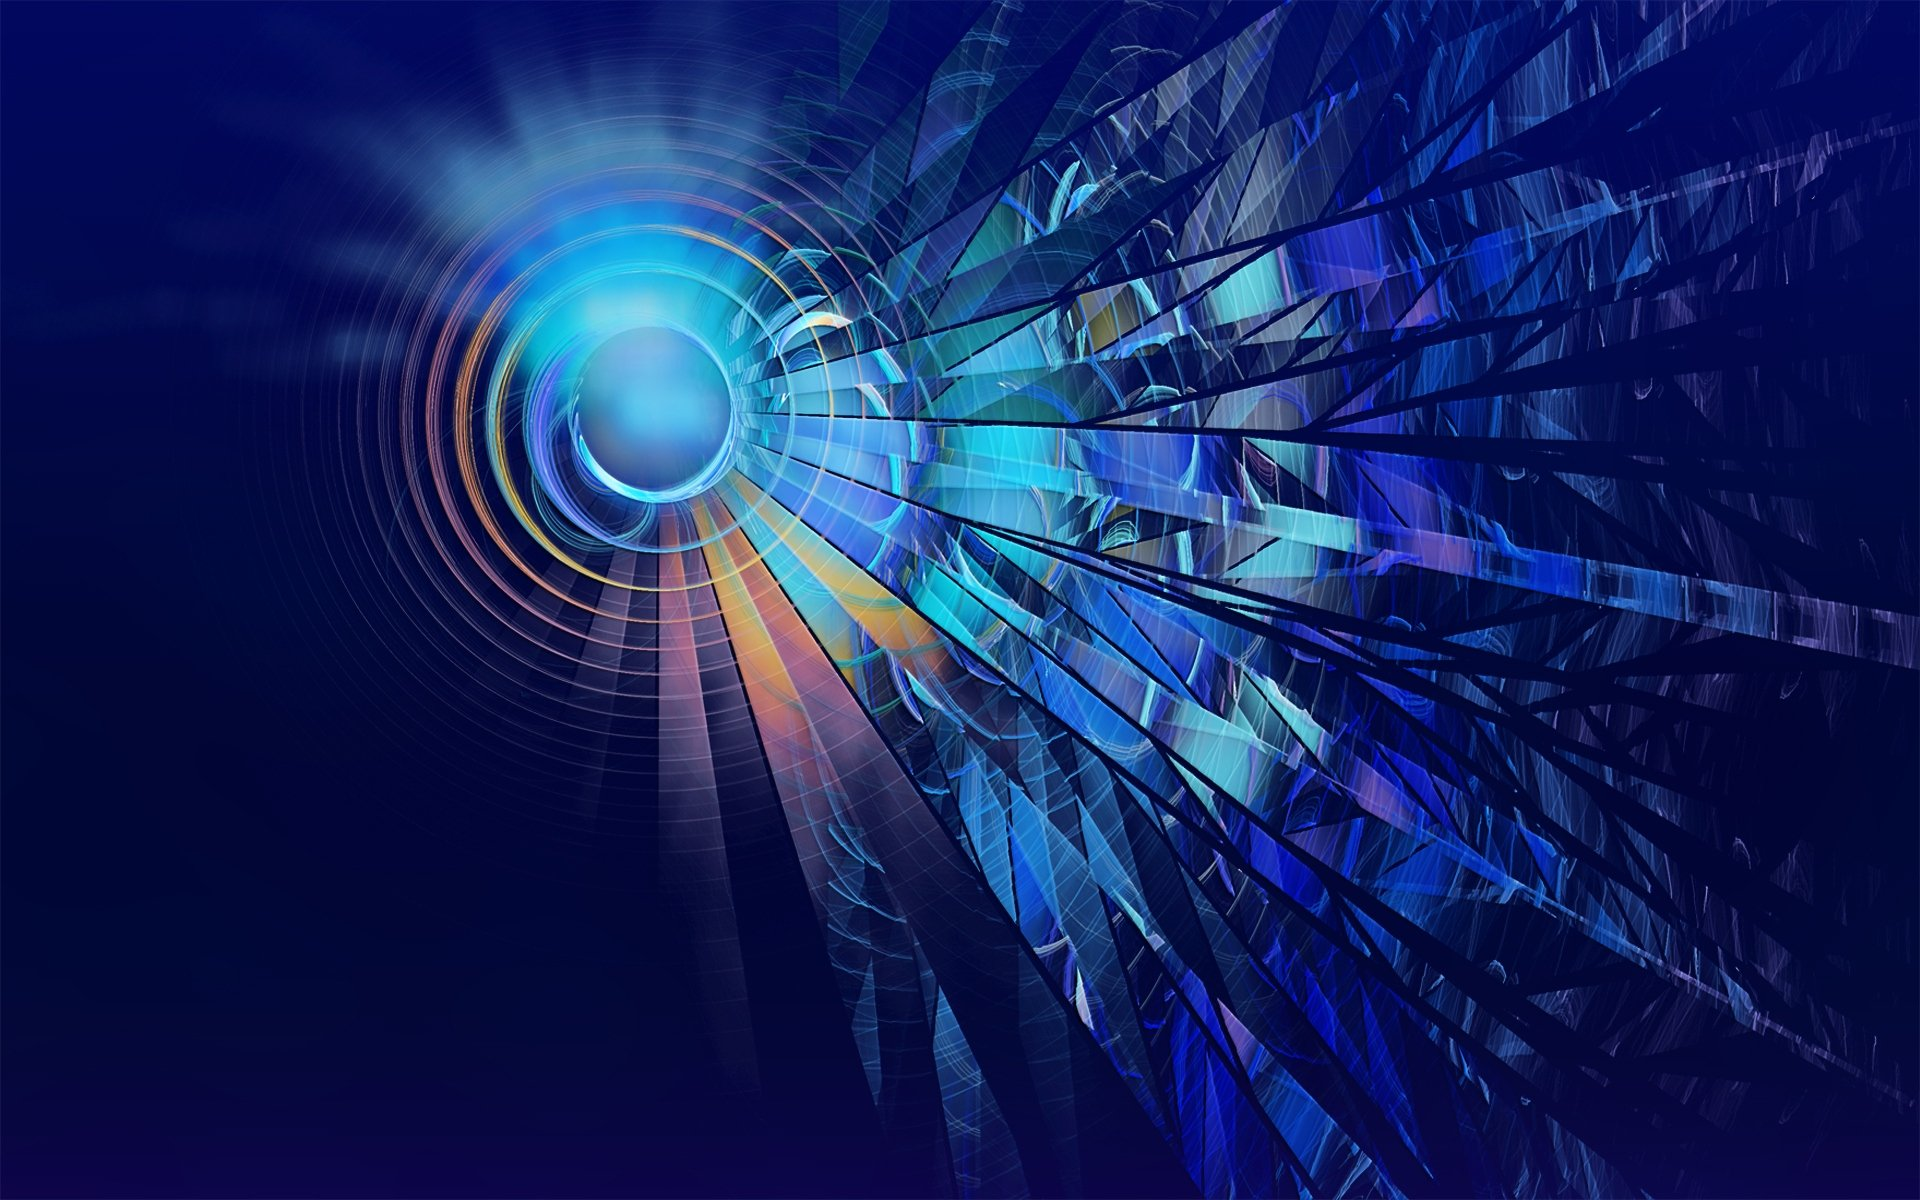 Abstract Abstract Blue Background 1920x1200px High 1920x1200